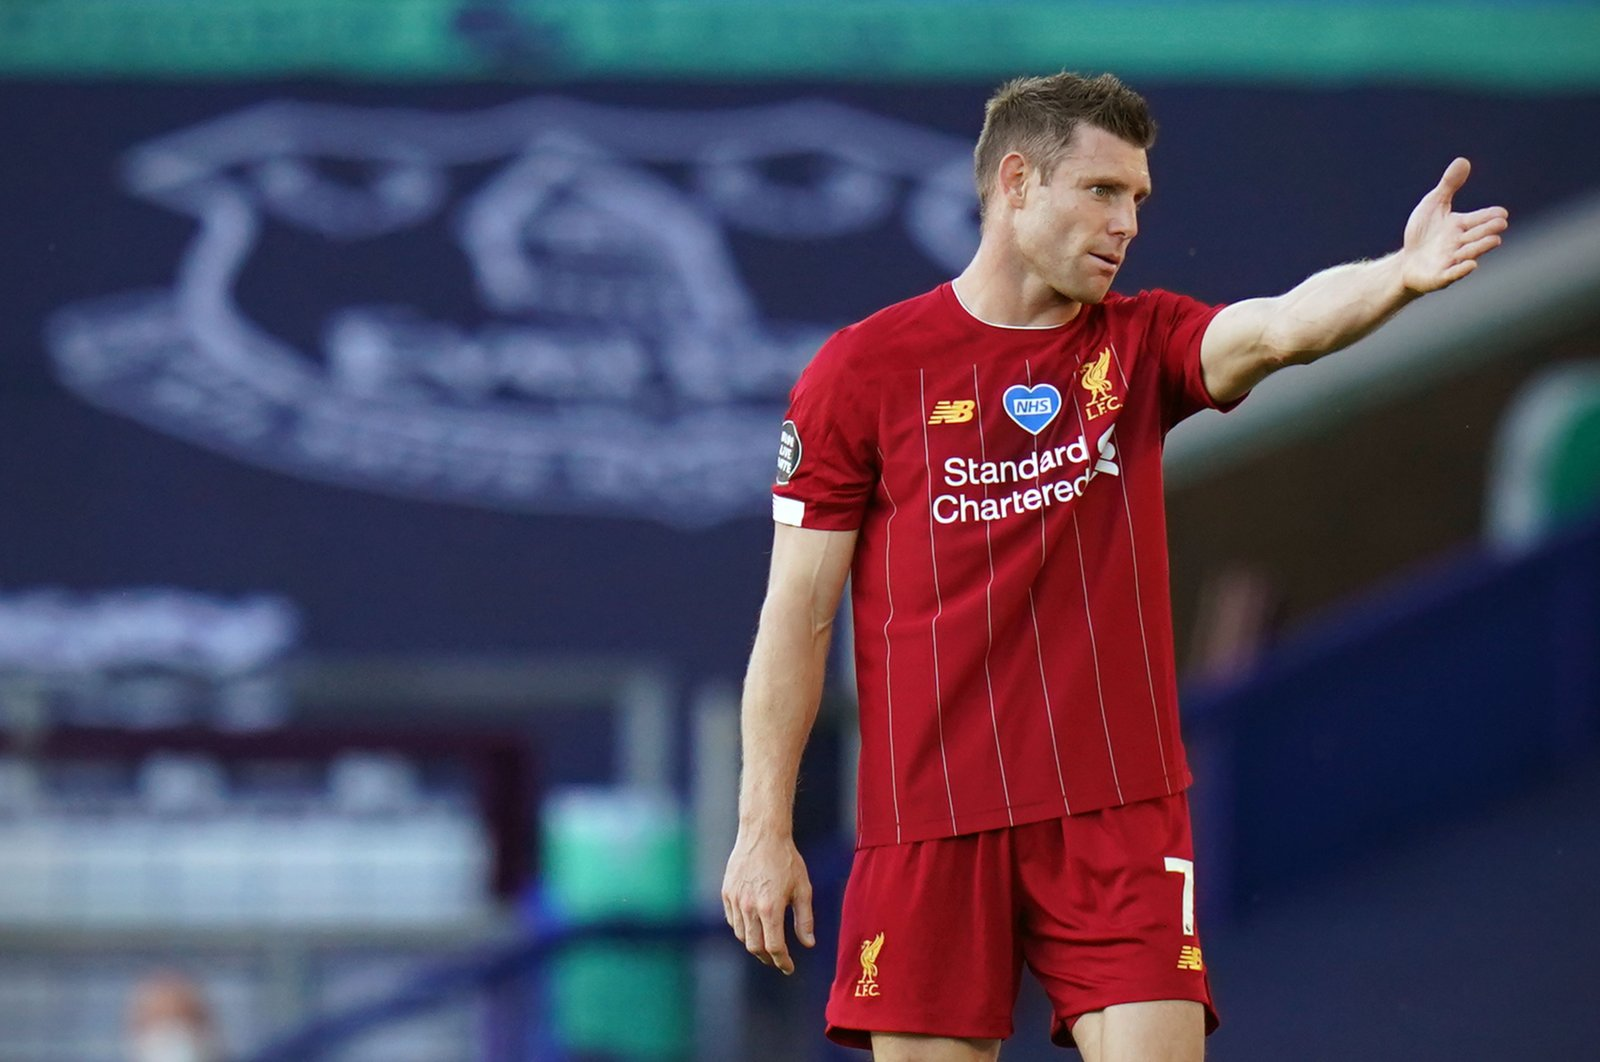 Liverpool's James Milner gestures during a Premier League match in Liverpool, England, June 21, 2020. (AFP Photo)